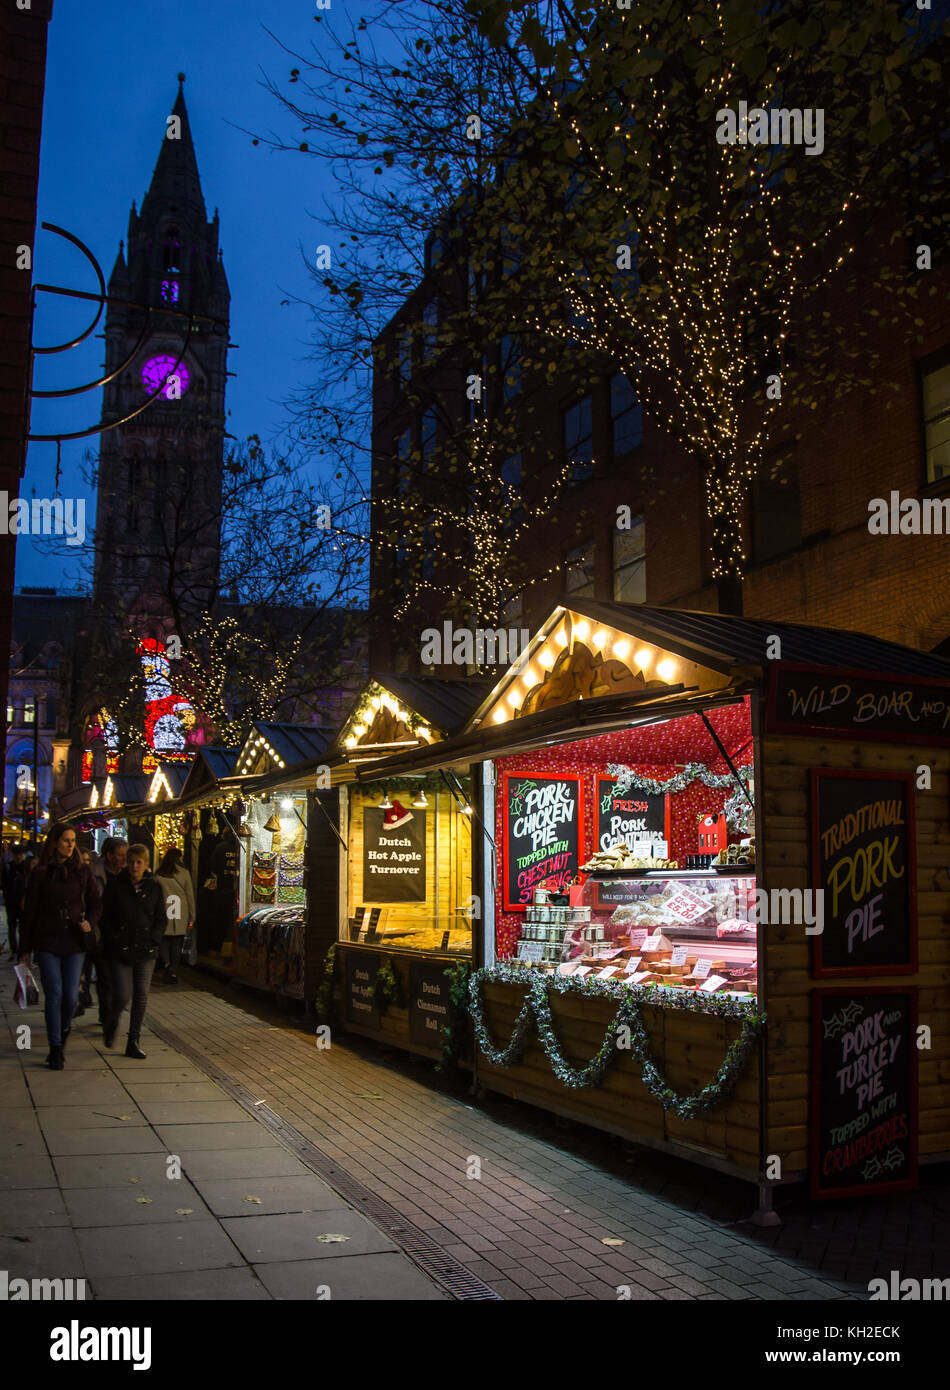 Christmas Market Stalls at the top of Brazennose street, Manchester, UK and town hall clock in the background - Stock Image